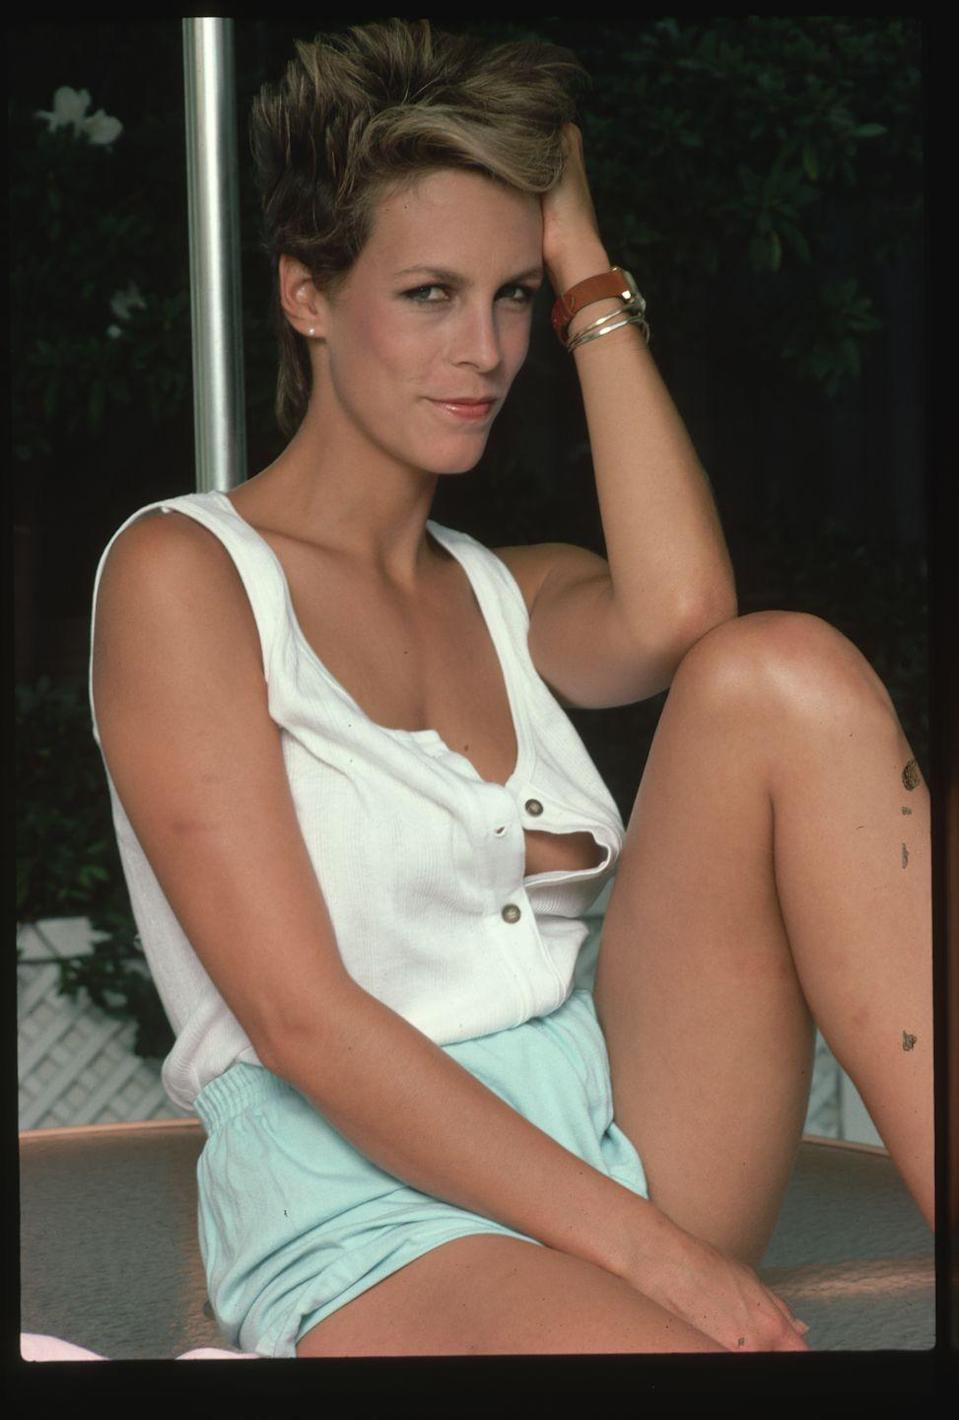 <p>Jamie Lee Curtis poses in a pair of turquoise athletic shirts and a white tank top. The actress, who rose to fame in the horror film Halloween, had just starred in A Fish Called Wanda. </p>